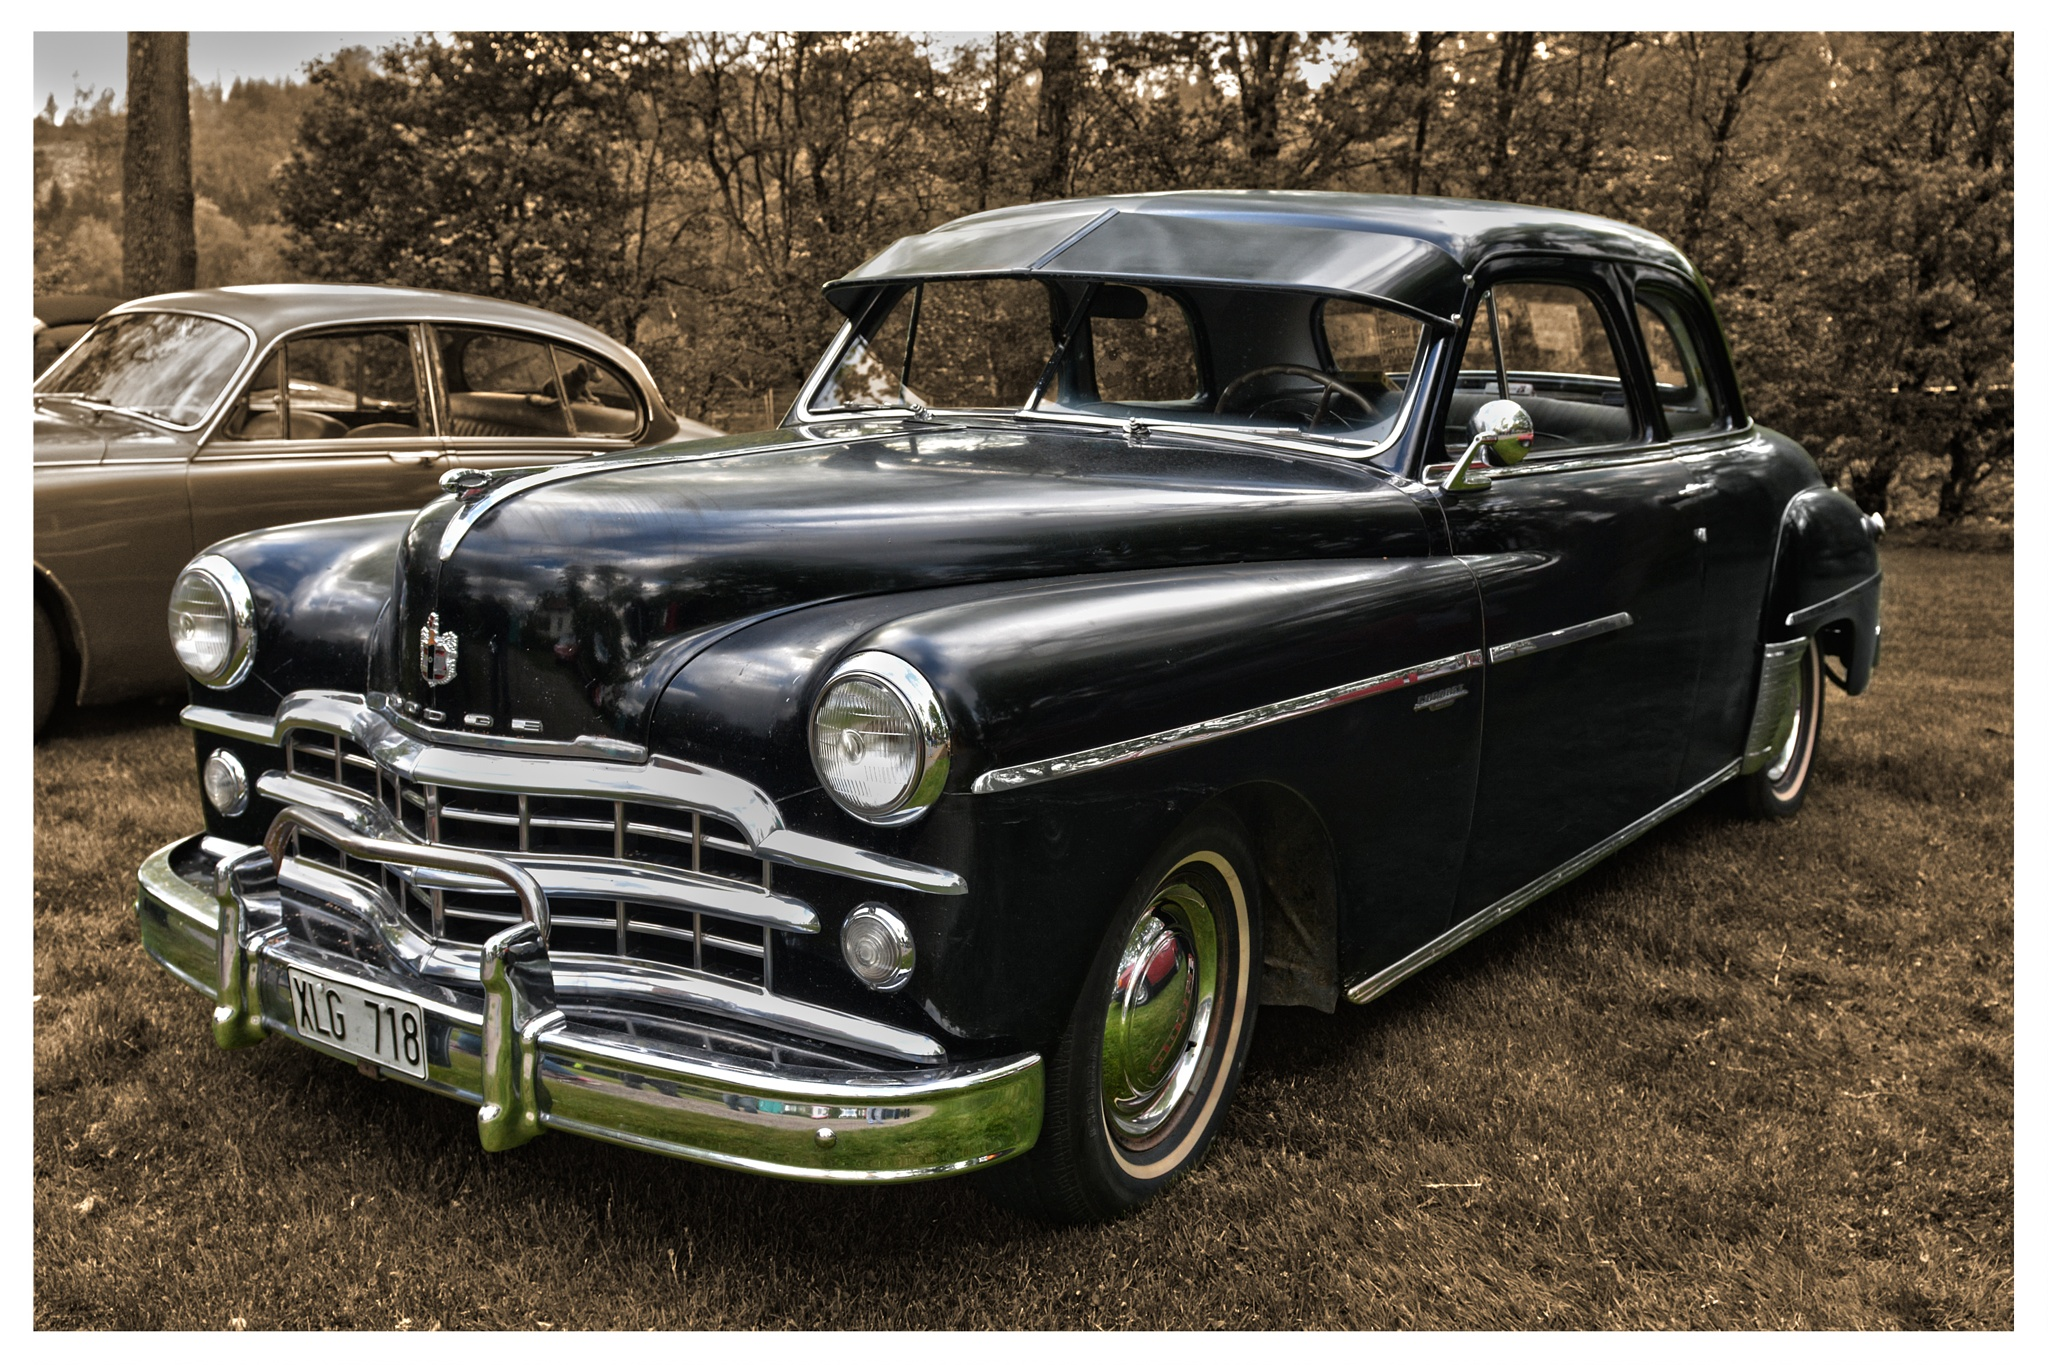 1949 Dodge 2D Club Coupe by Linda Persson